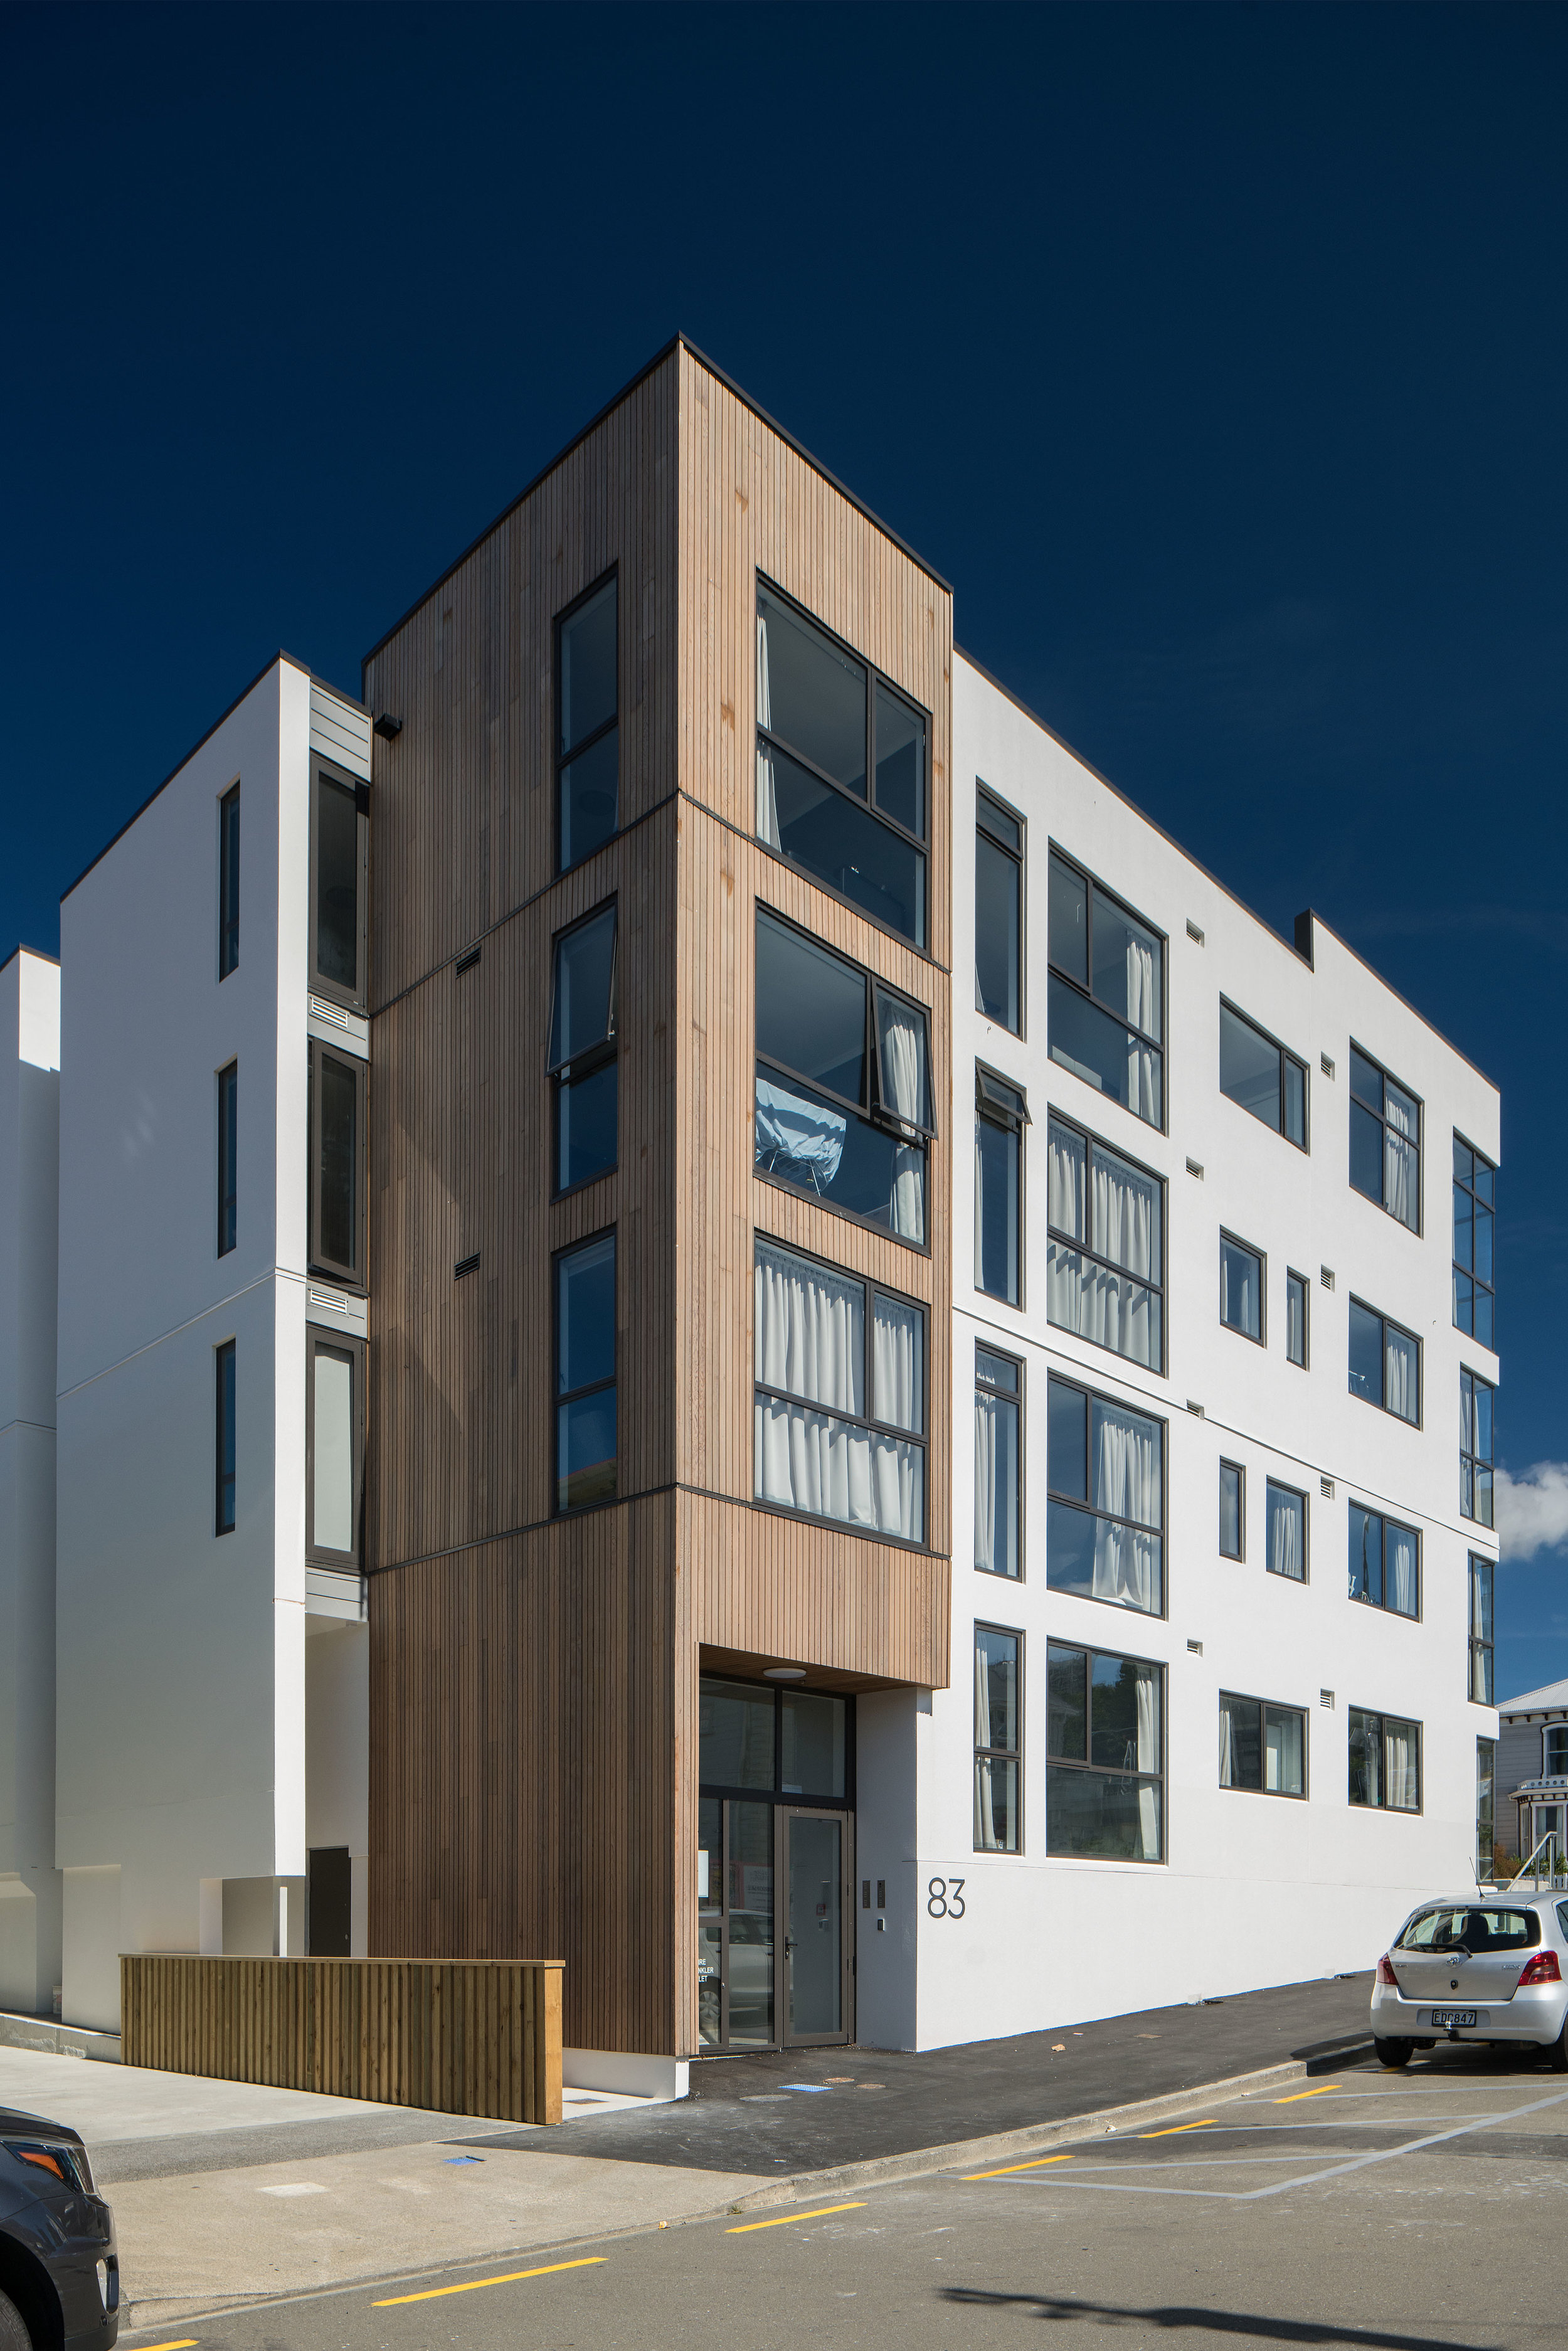 83 ABEL SMITH STREET BY ARCHAUS. ABEL SMITH STREET ENTRY SHOT